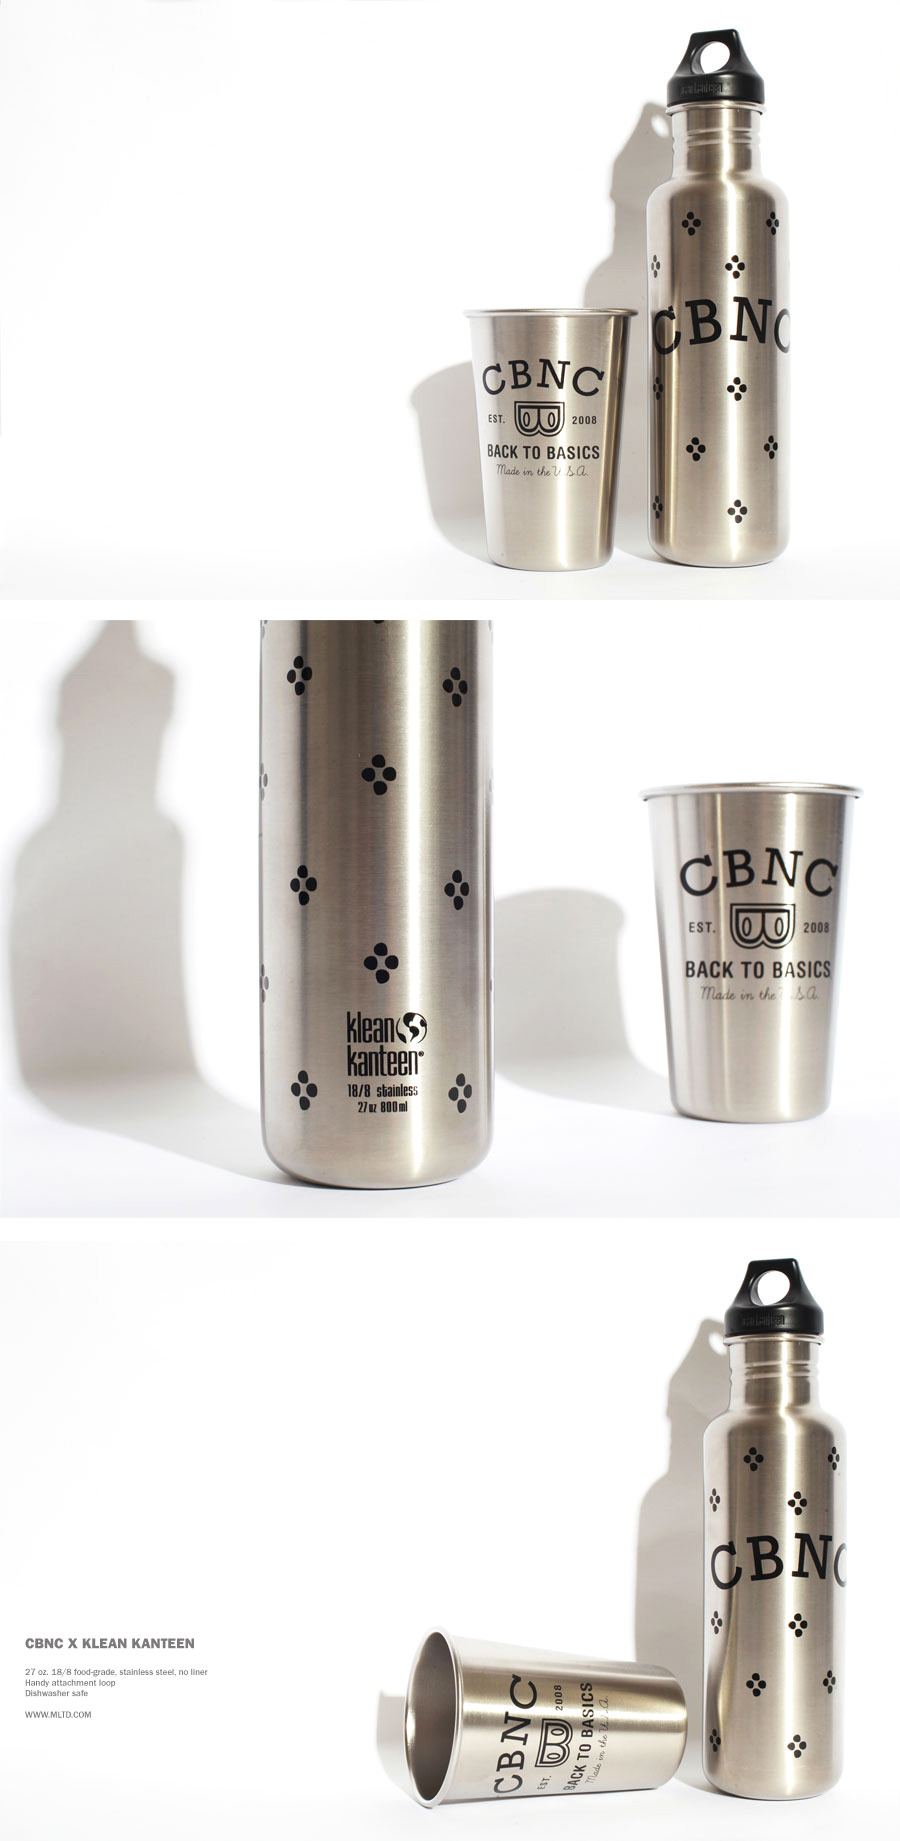 CBNC x Klean Kanteen - Now Available here! Photo: Danny Steezy